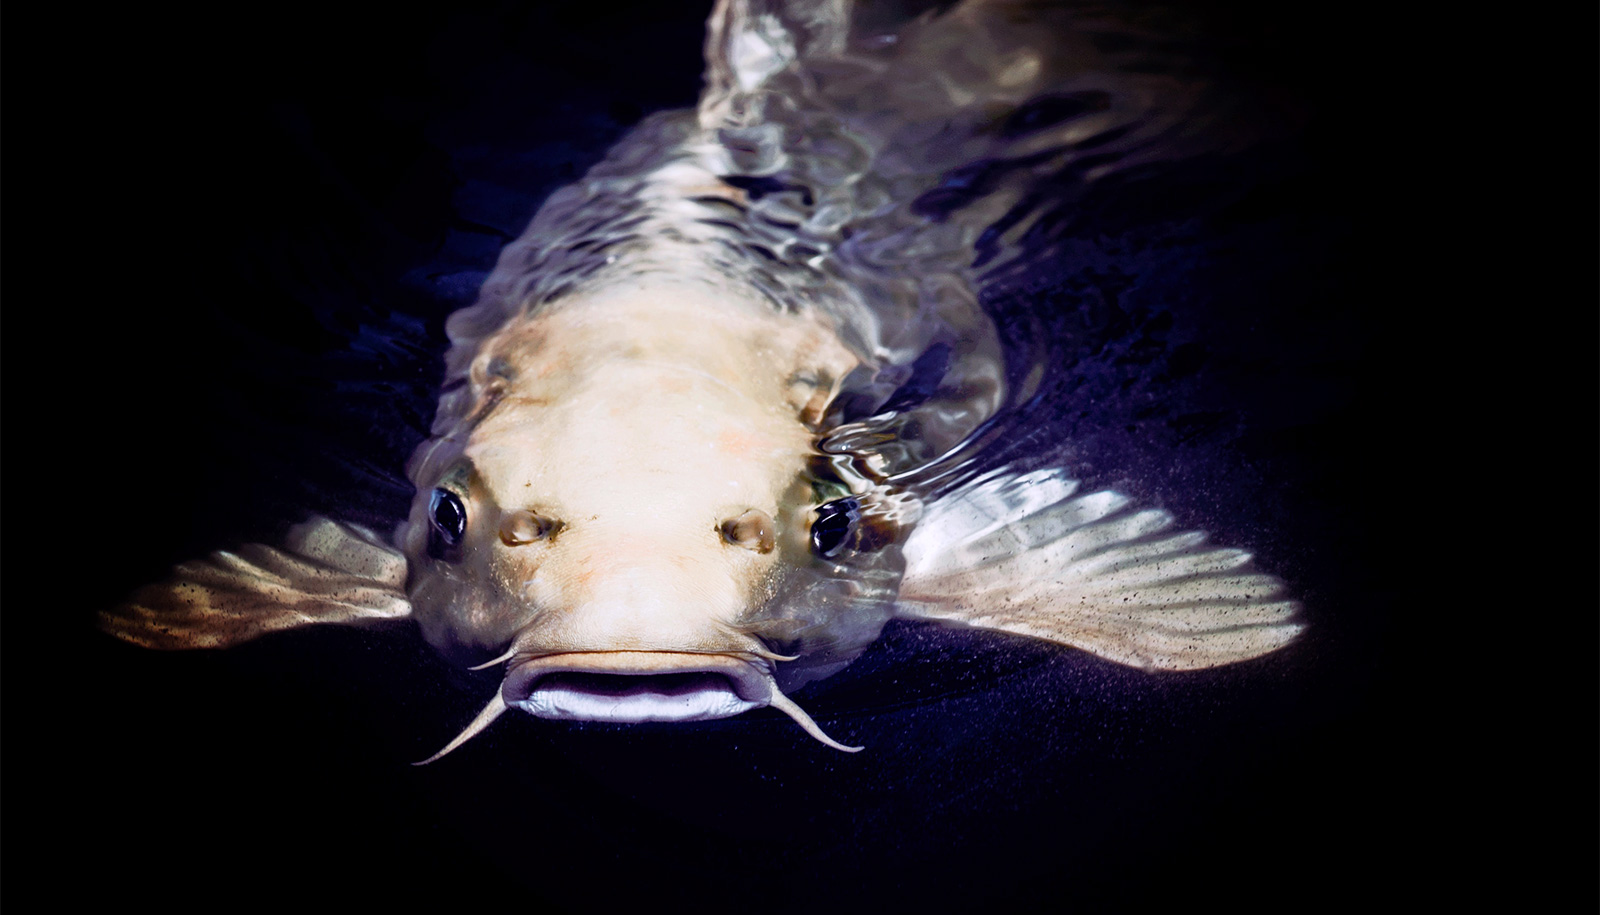 Scientists use 'x-ray vision' to see how catfish nab prey